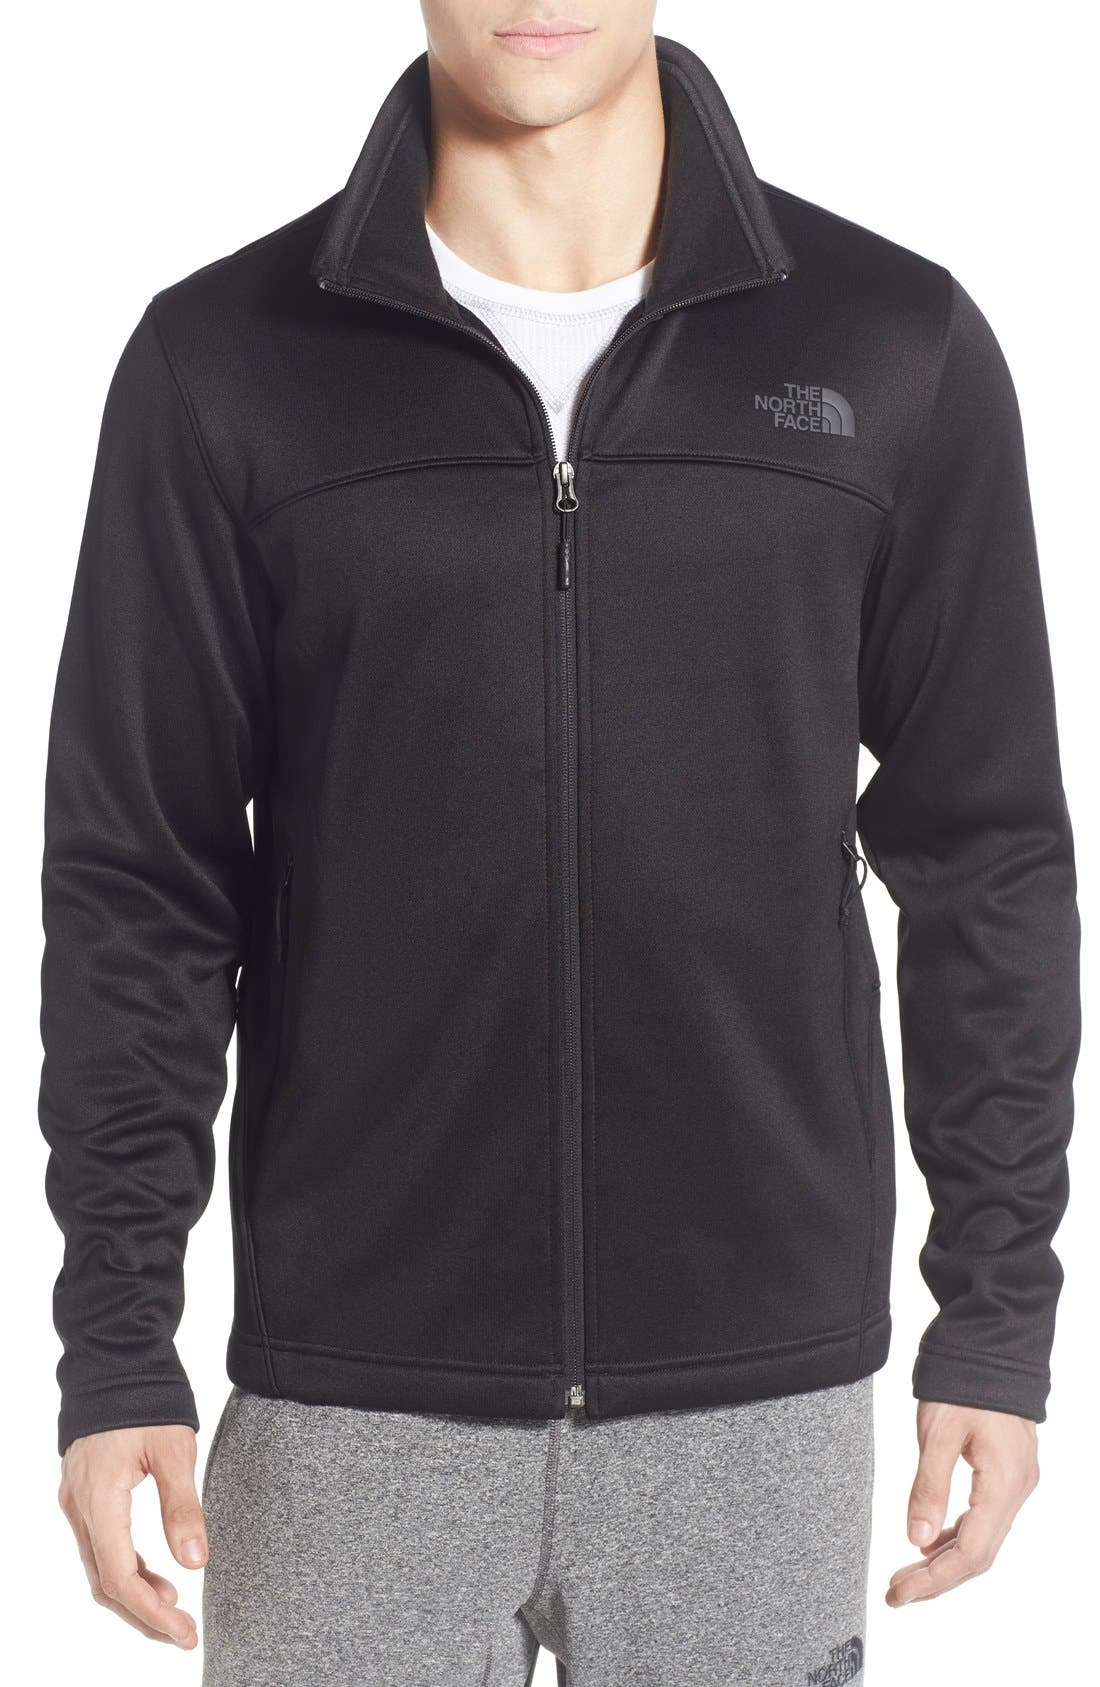 Alternate Image 1 Selected - The North Face 'Momentum' Fleece Jacket